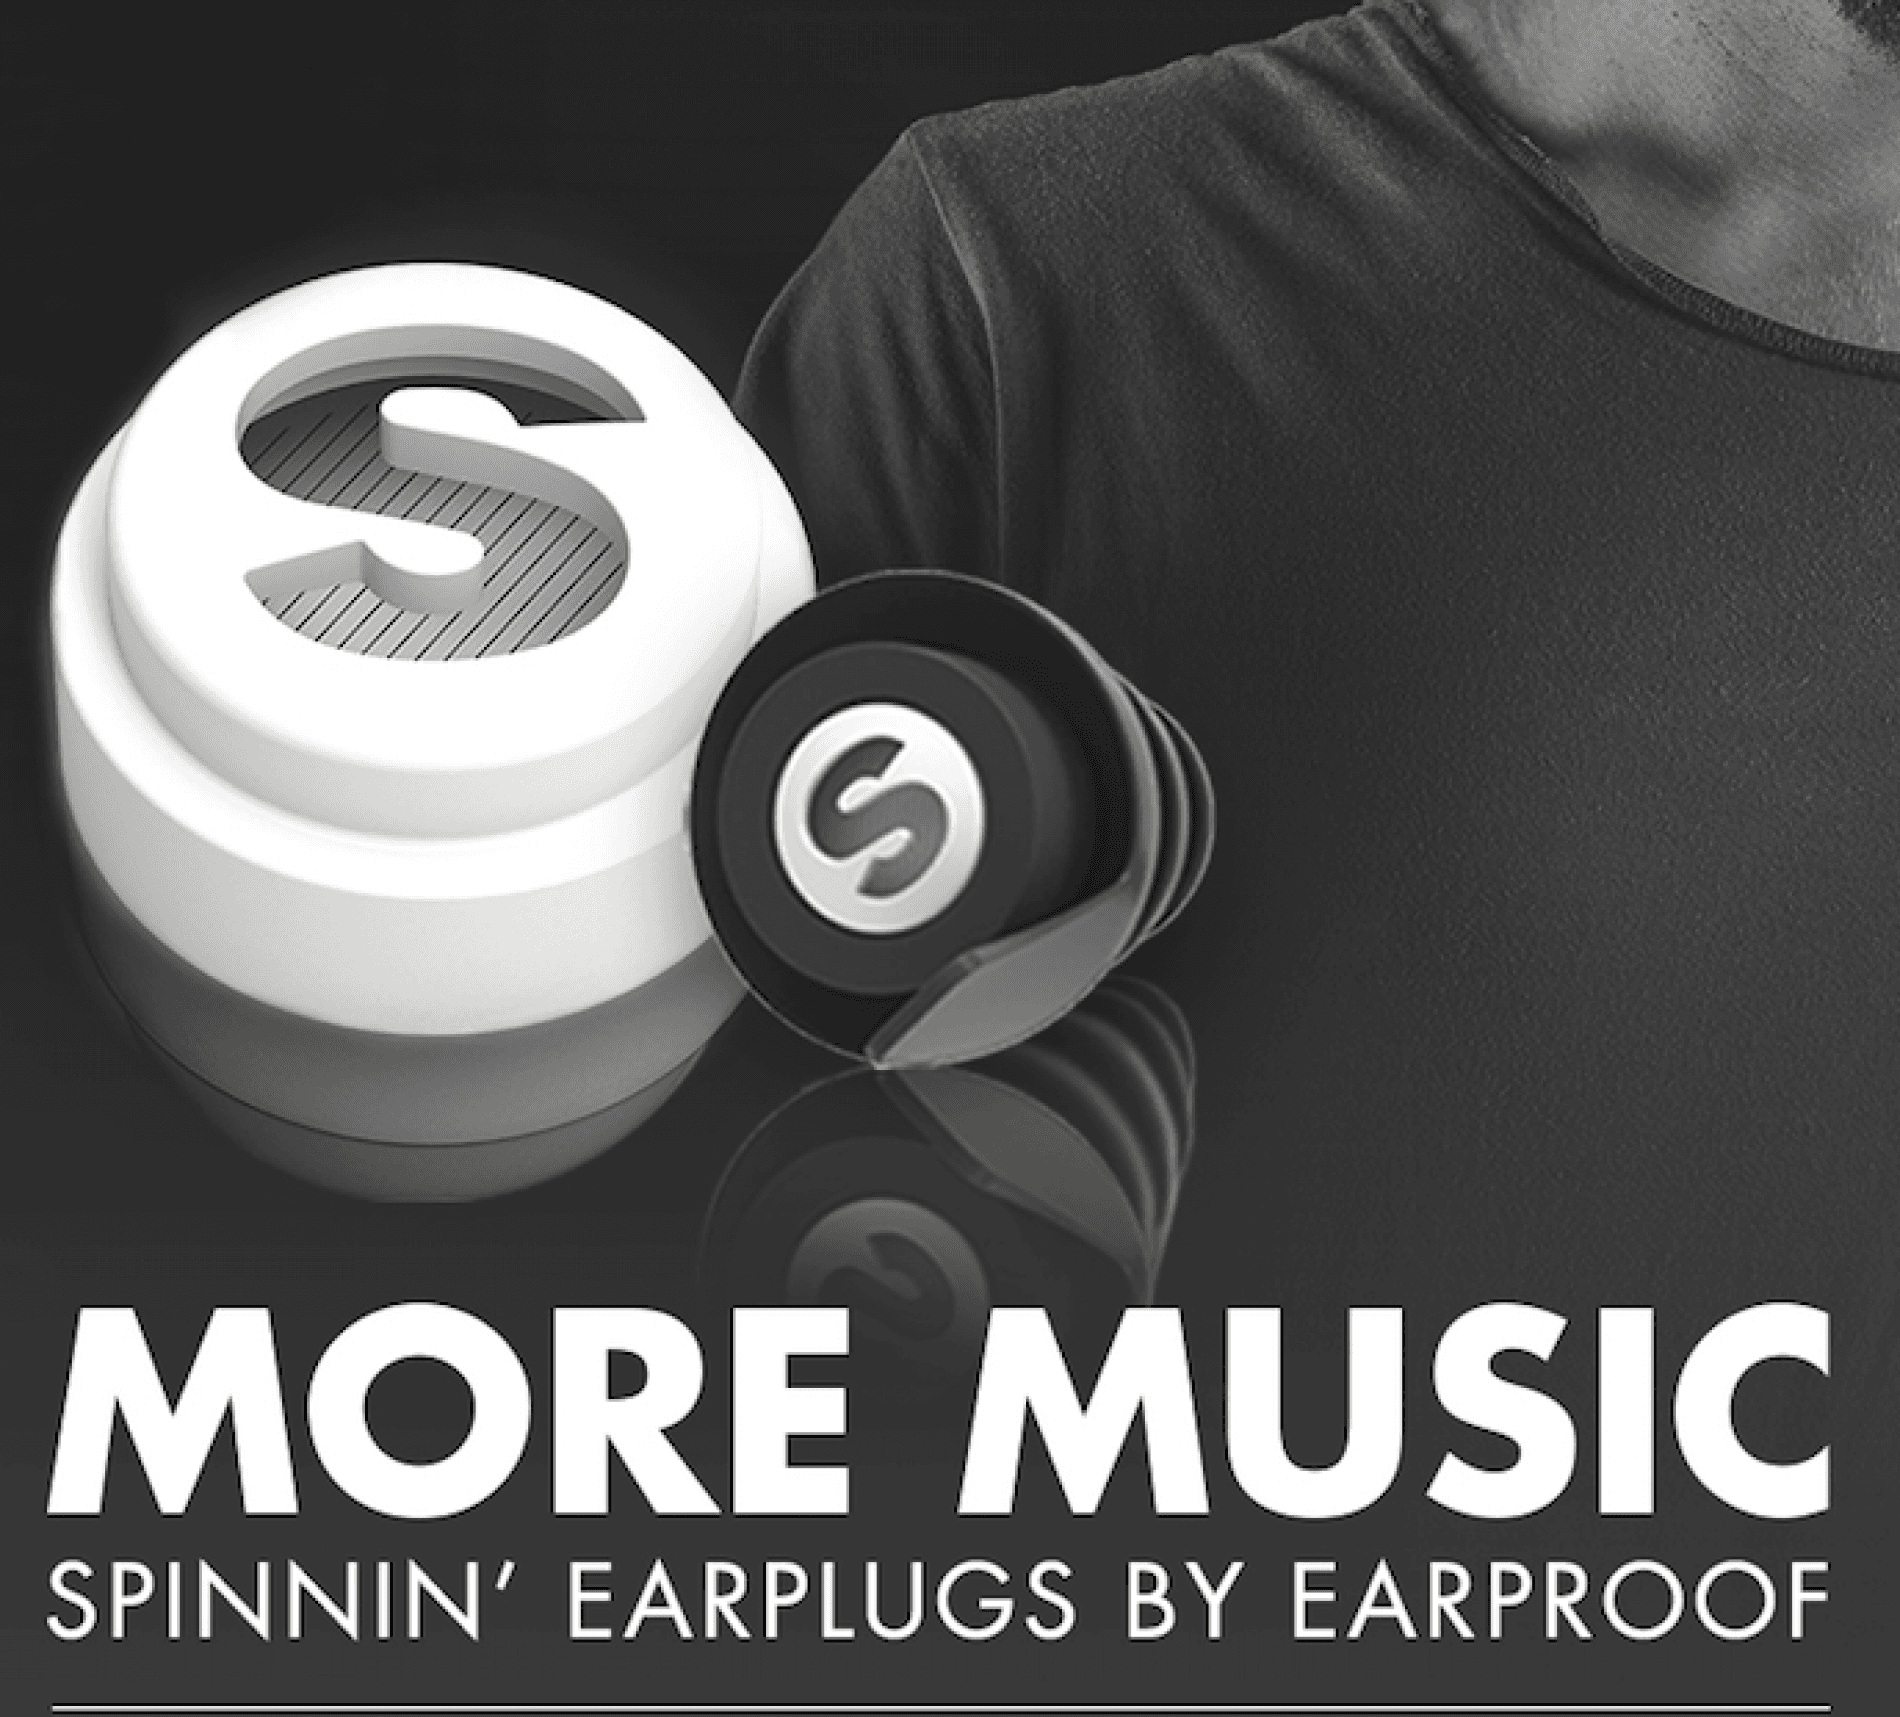 Spinnin' Records & Earproof team up for exclusive earplugs